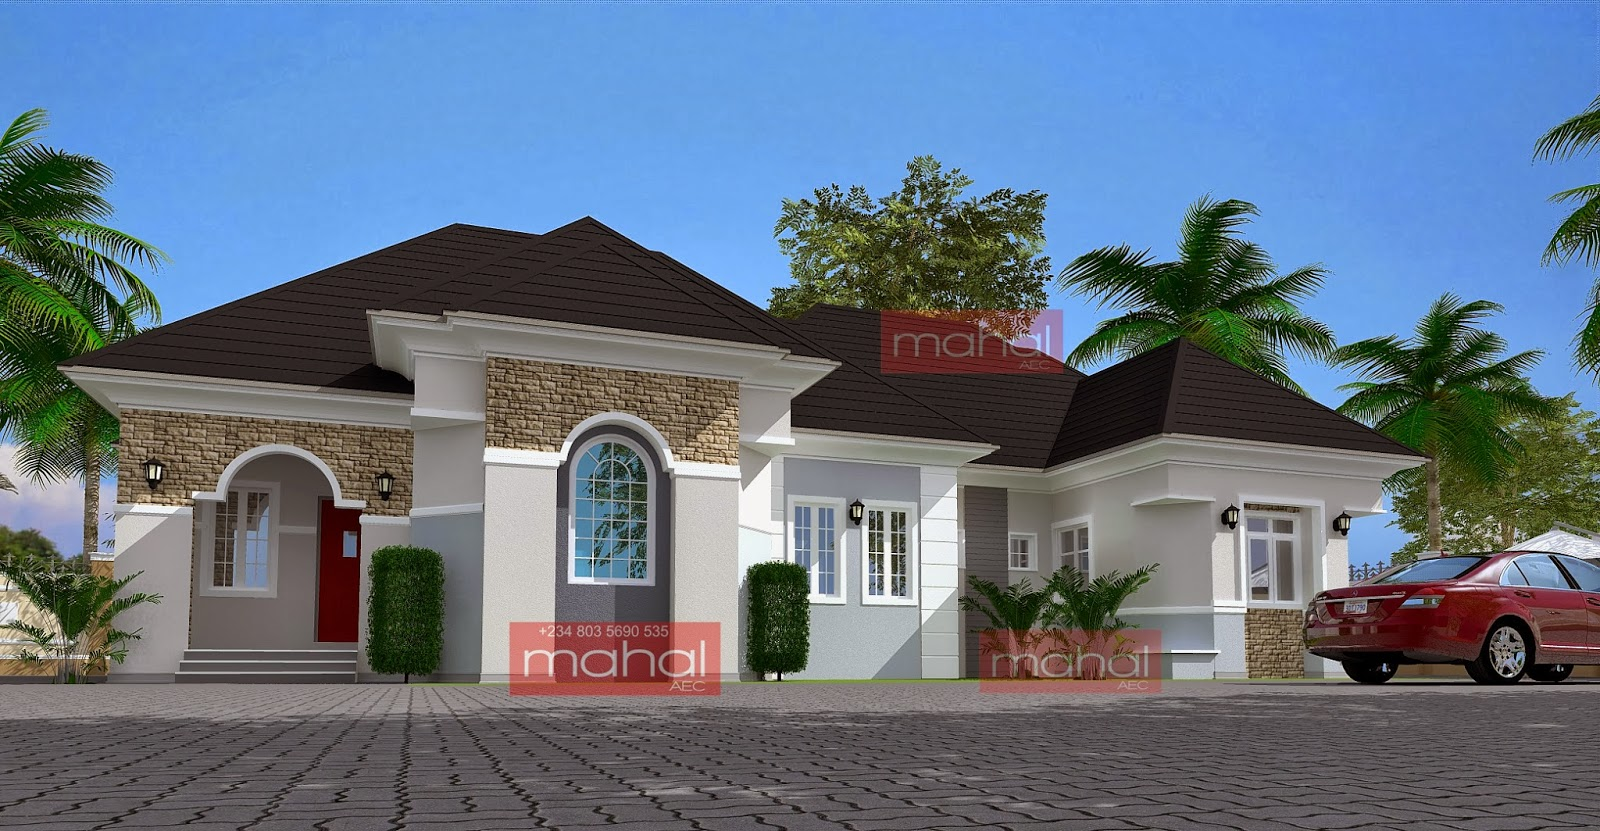 Nigeria bungalow designs joy studio design gallery for Nigeria building plans and designs